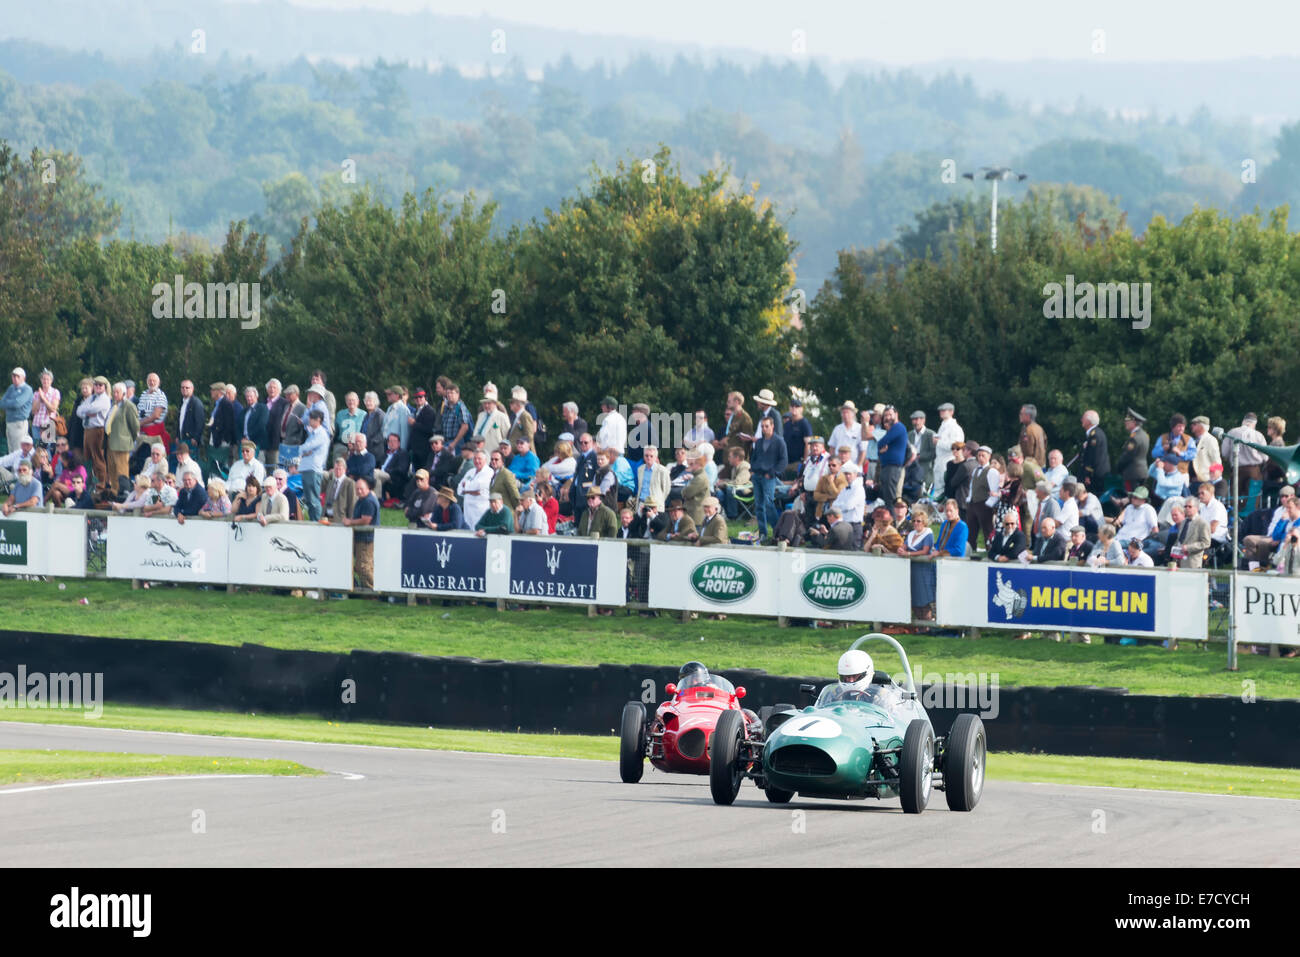 Chichester, West Sussex, UK. Sonntag, 14. September 2014. Beim Goodwood Revival, Goodwood motor Circuit. Am letzten Stockbild